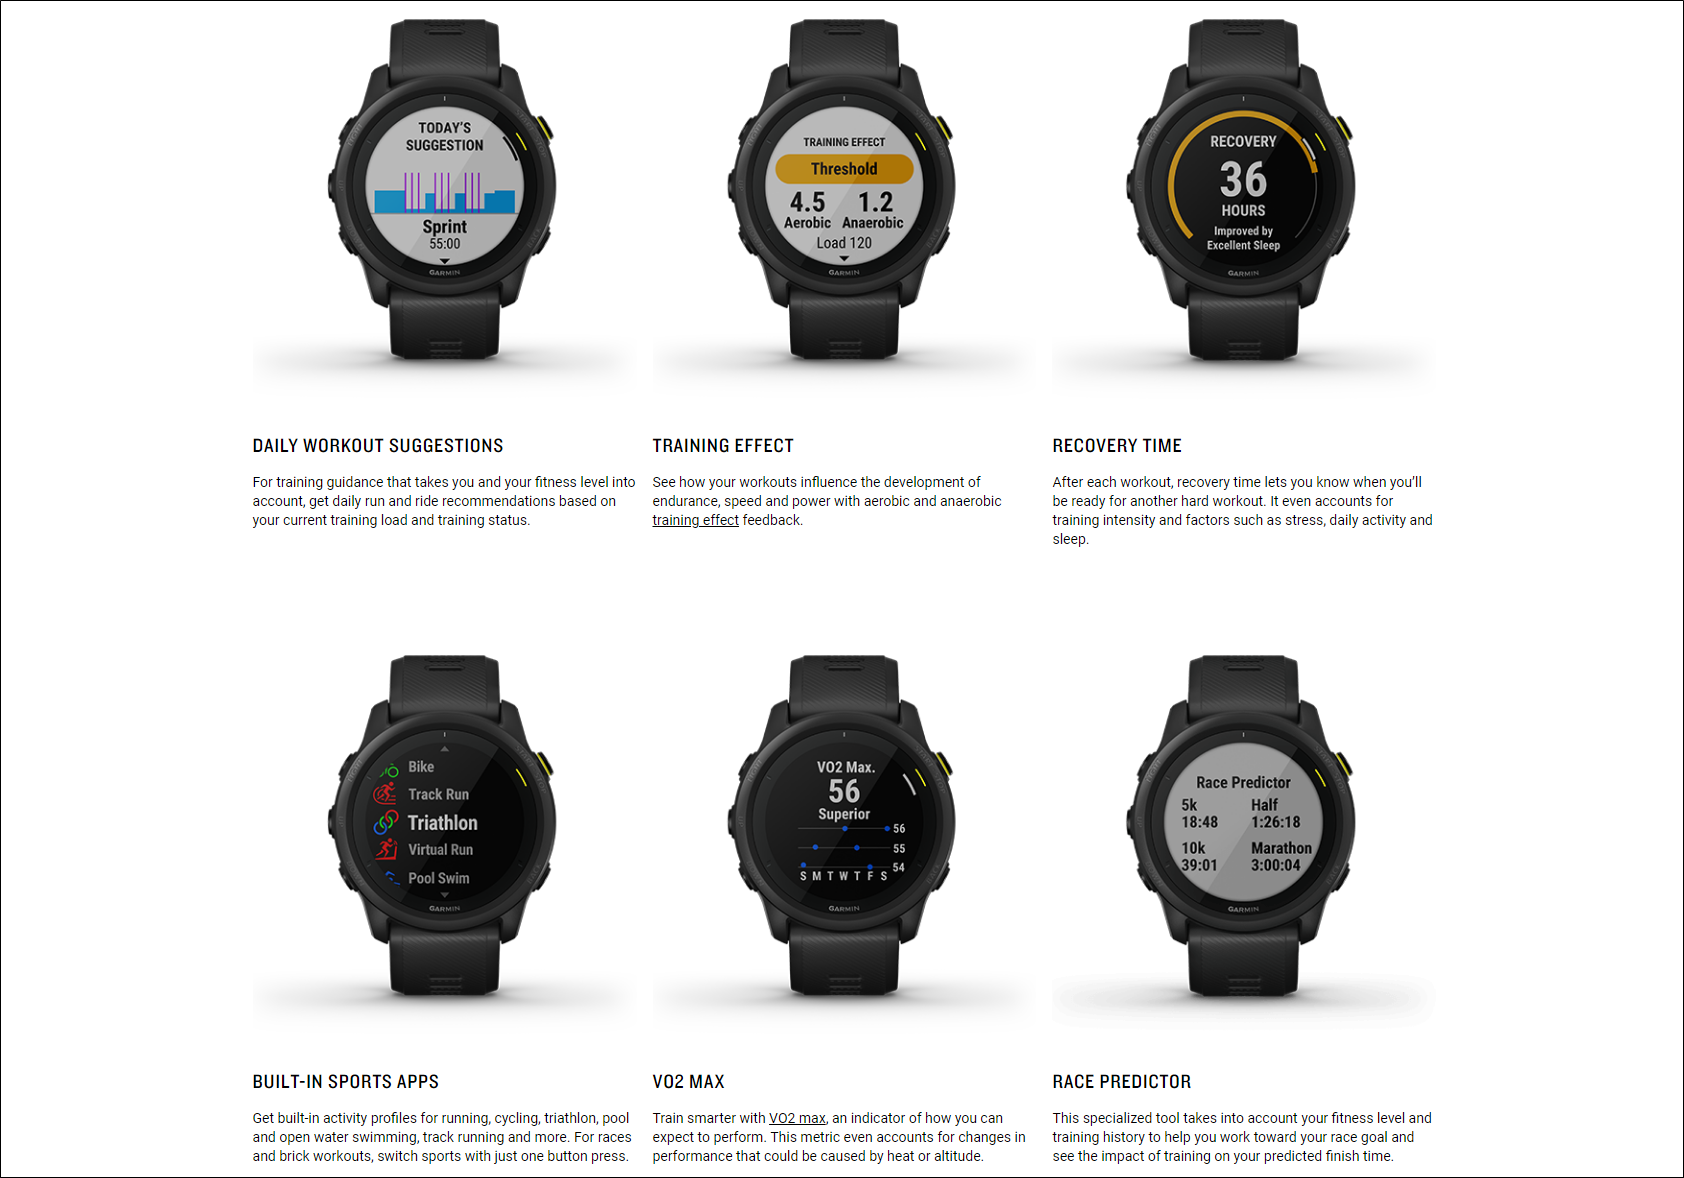 Some of the Forerunner 745's more advanced features